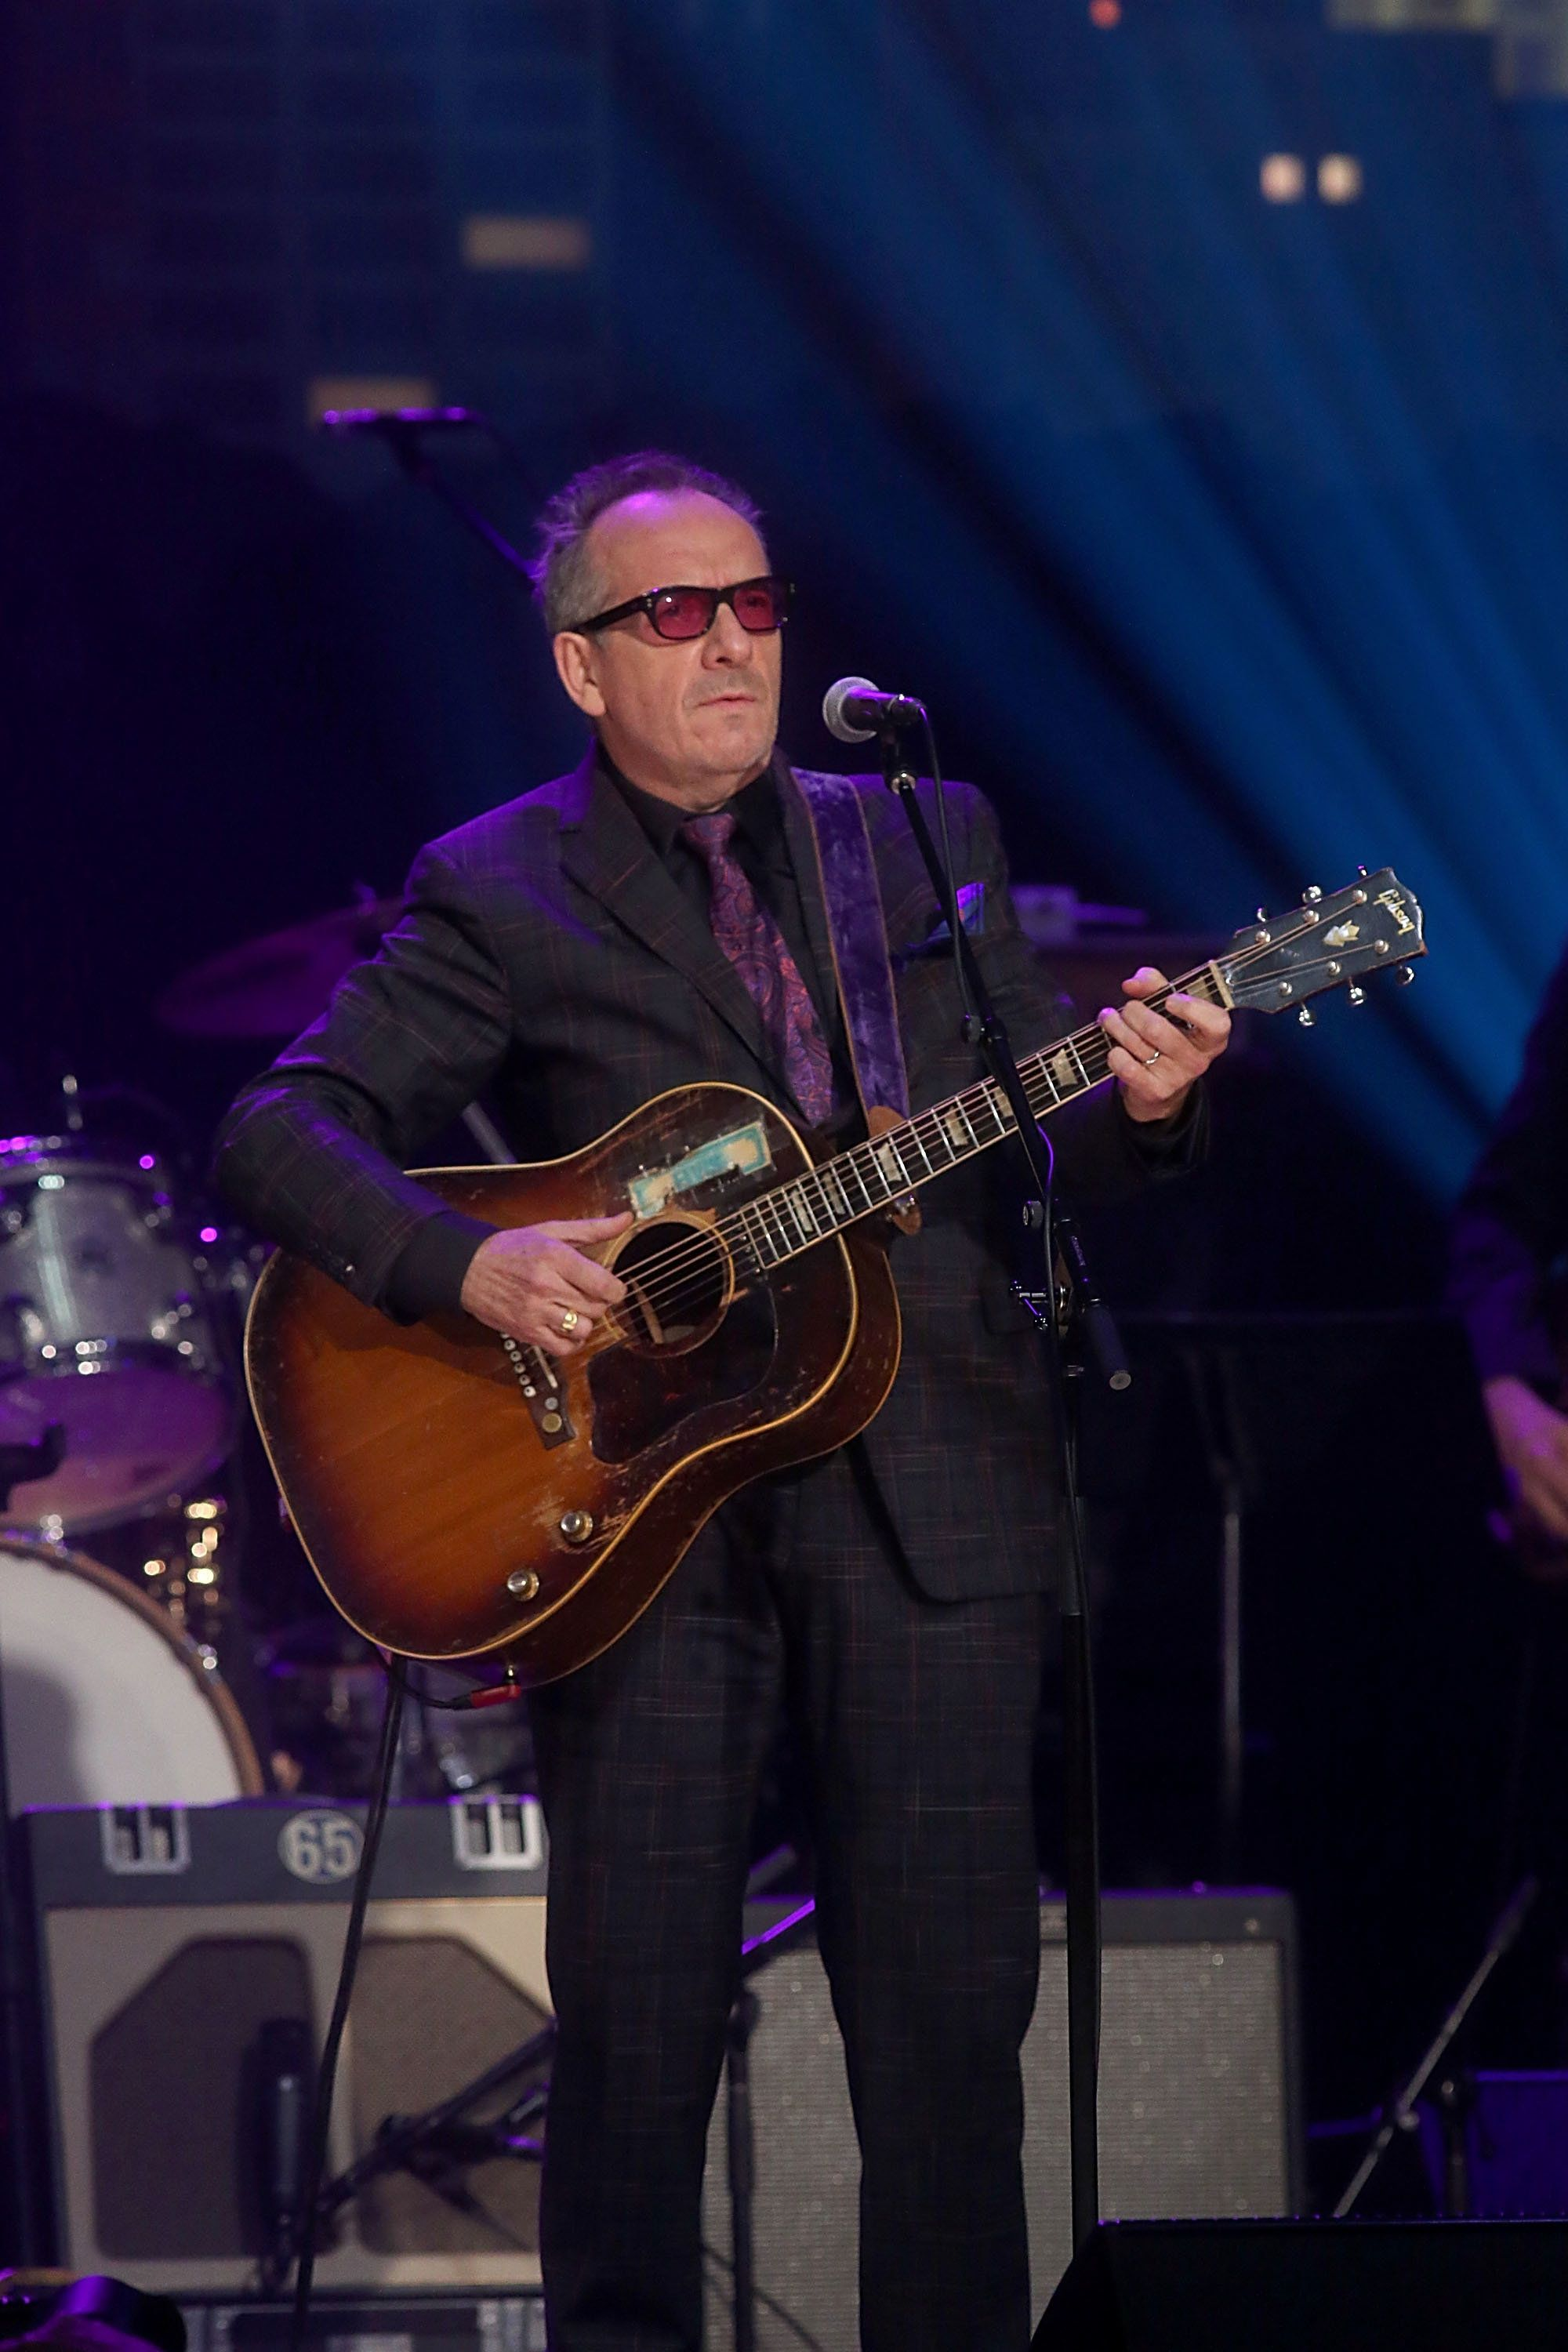 AUSTIN, TEXAS - OCTOBER 25:  Elvis Costello performs in concert during the Austin City Limits 2017 Hall of Fame Inductions at ACL Live on October 25, 2017 in Austin, Texas.  (Photo by Gary Miller/Getty Images)